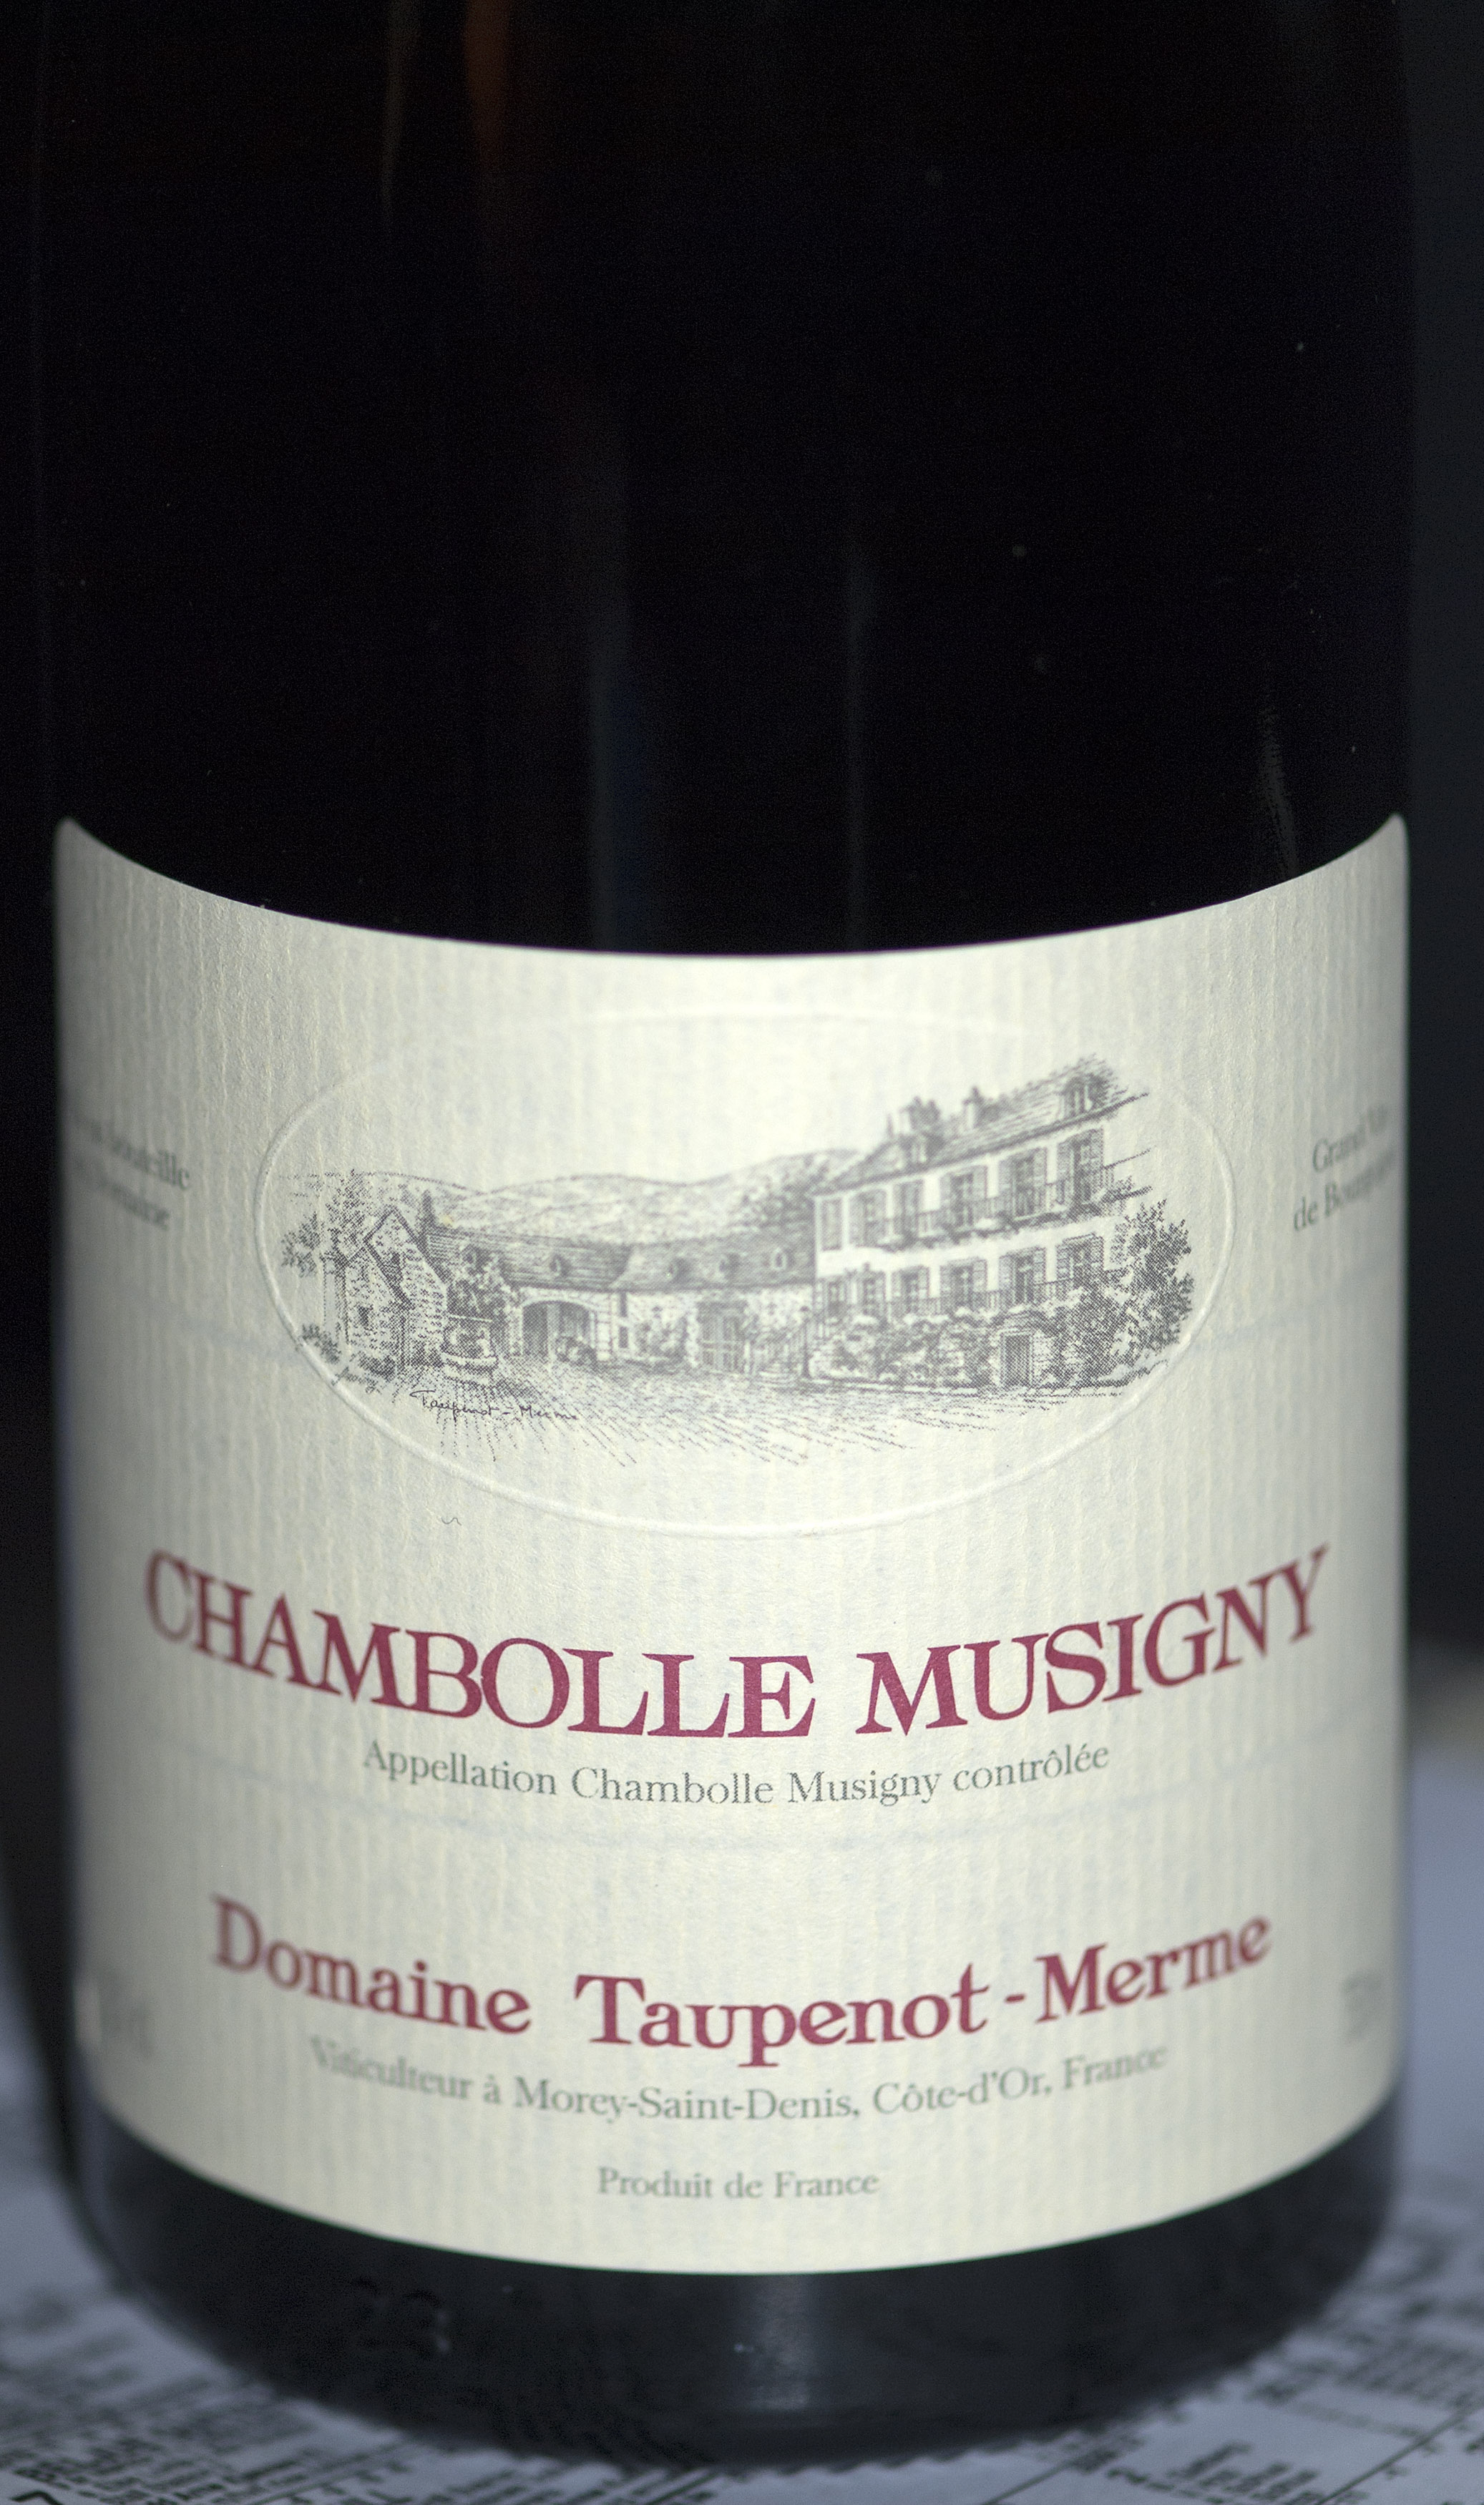 Chambolle Musigny ( Taupenot-Merme ) 2008